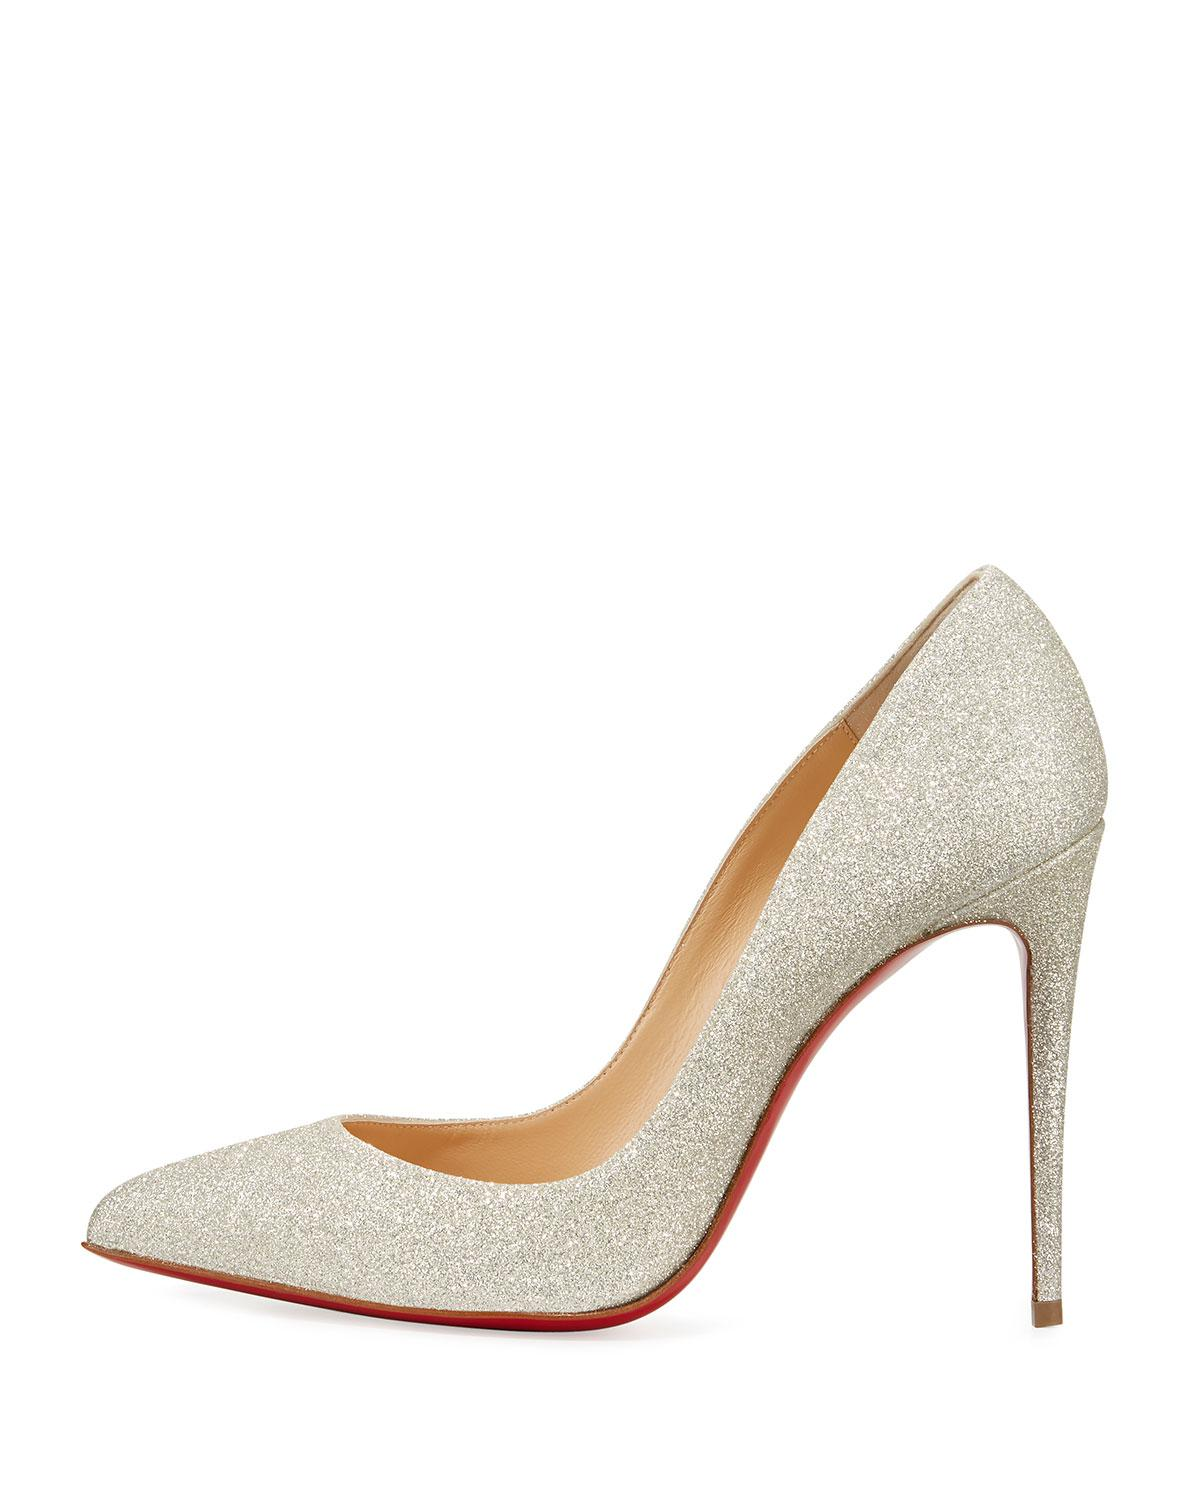 dcdbd832d7dd Christian Louboutin Pigalle Follies Glittered Red Sole Pumps in White -  Save 6% - Lyst